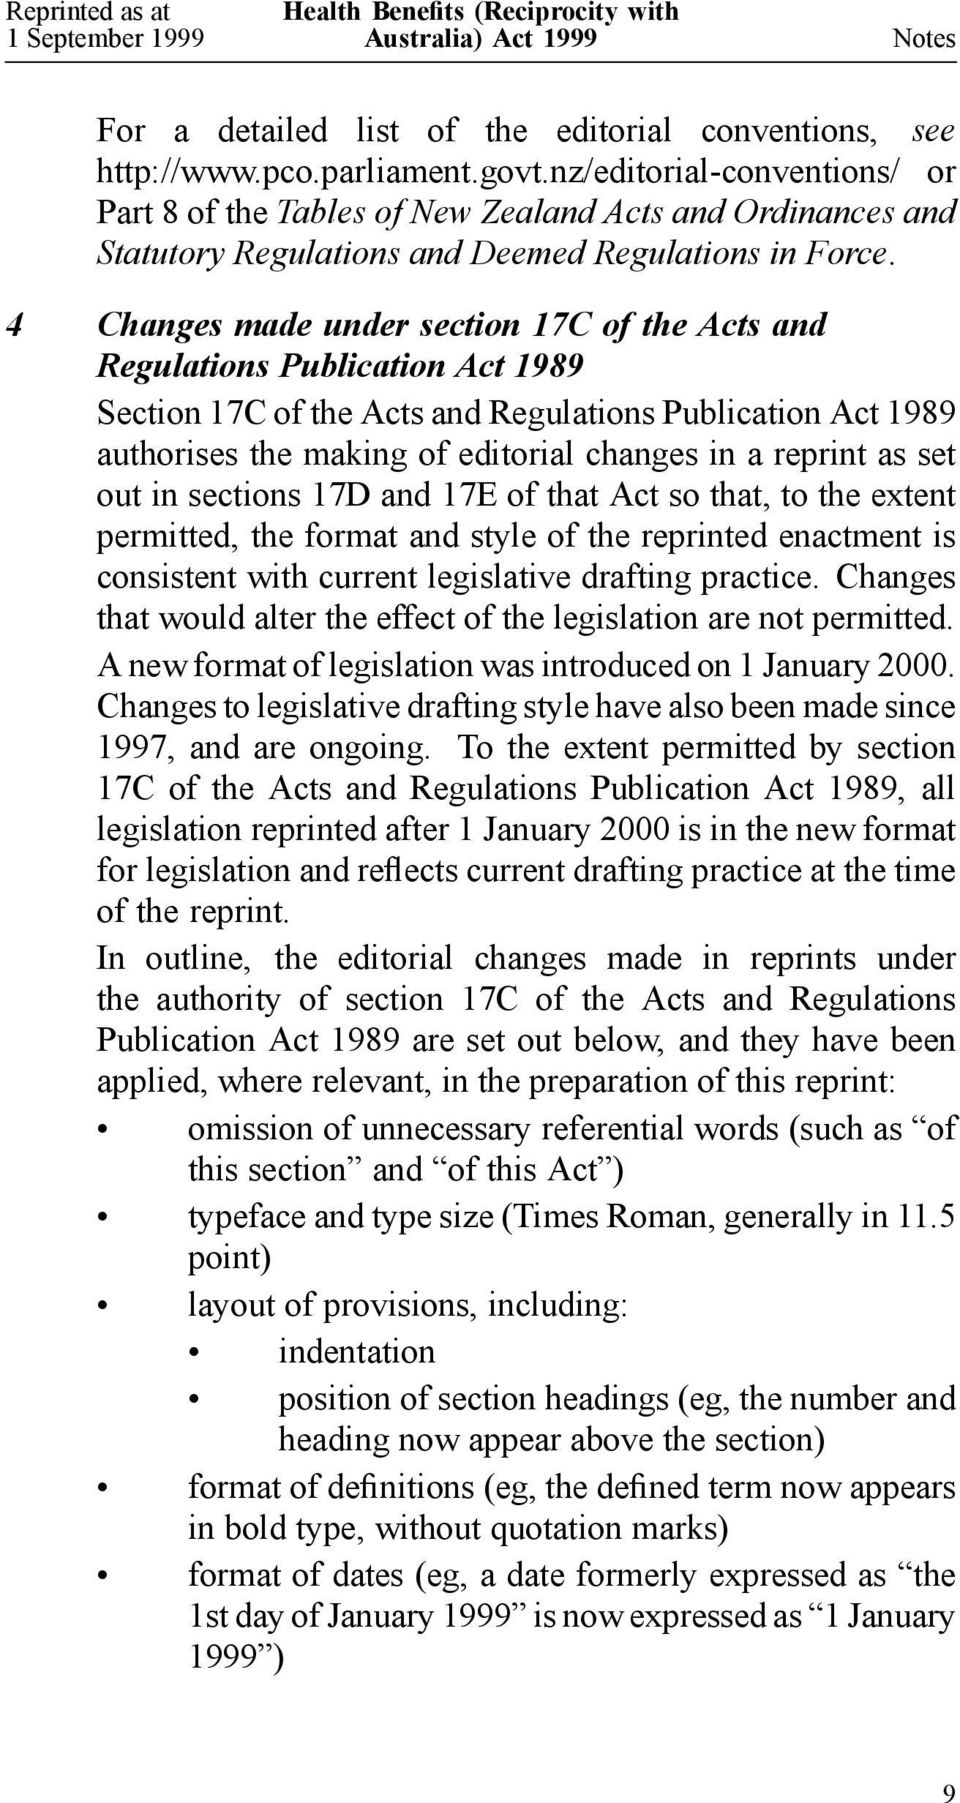 4 Changes made under section 17C of the Acts and Regulations Publication Act 1989 Section 17C of the Acts and Regulations Publication Act 1989 authorises the making of editorial changes in a reprint